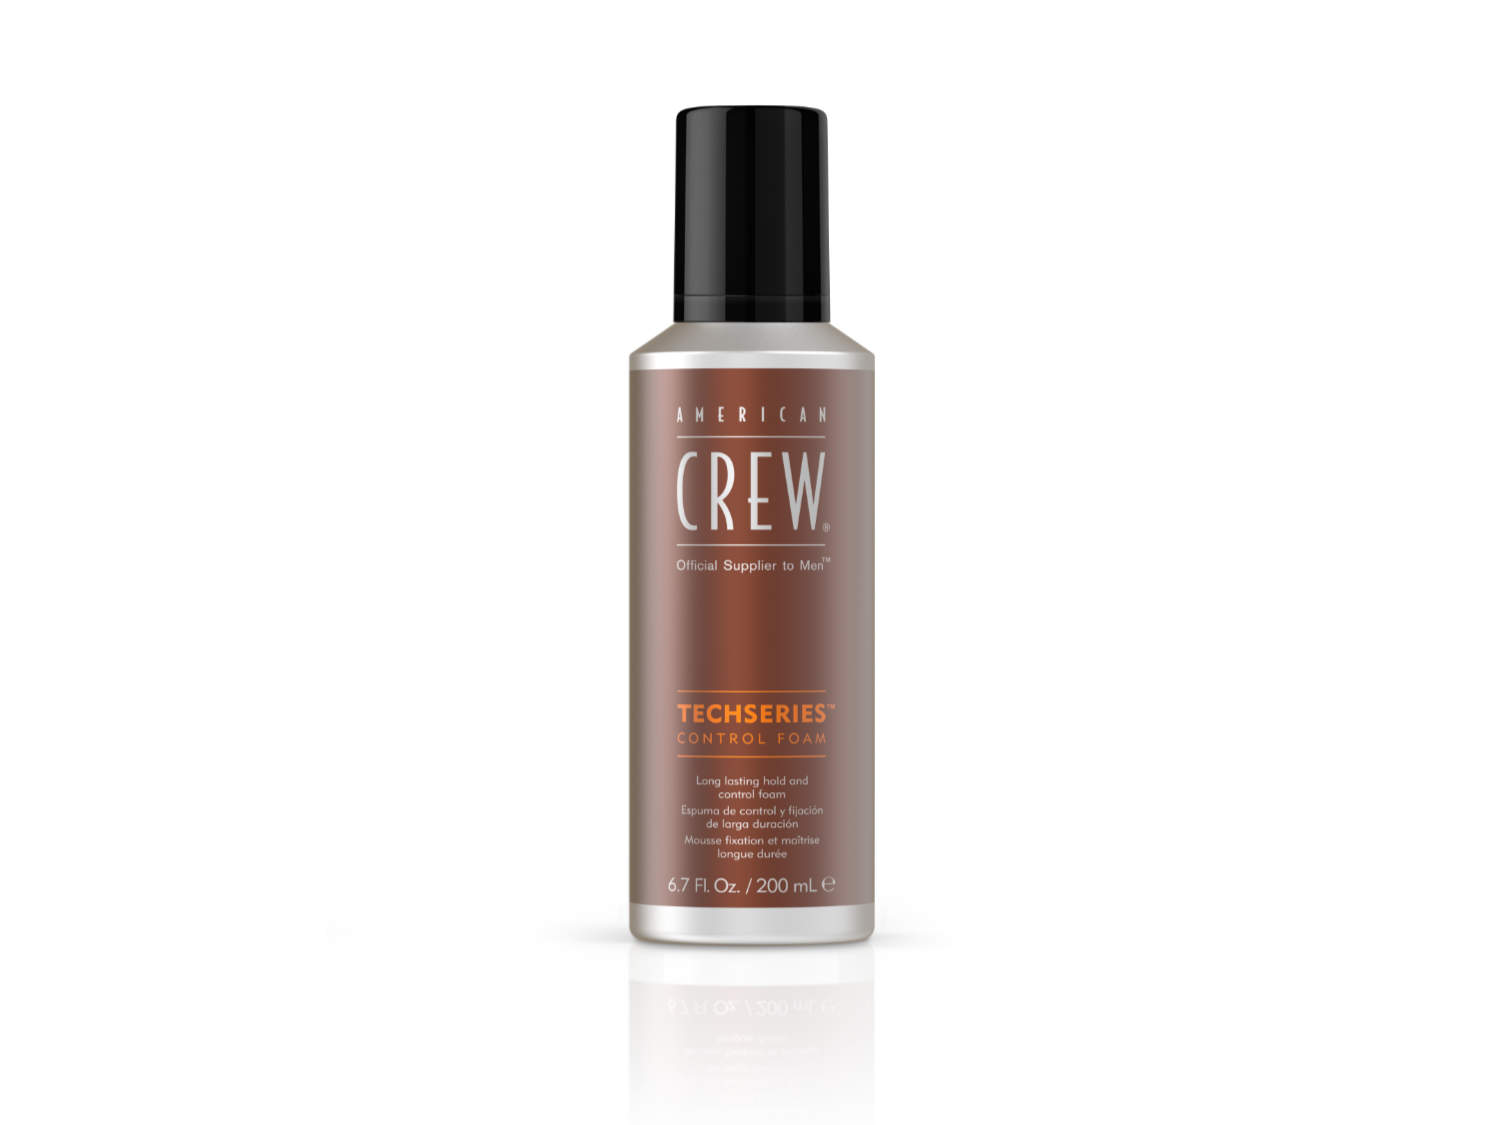 Arma Beauty - American Crew - Tech Series Control Foam